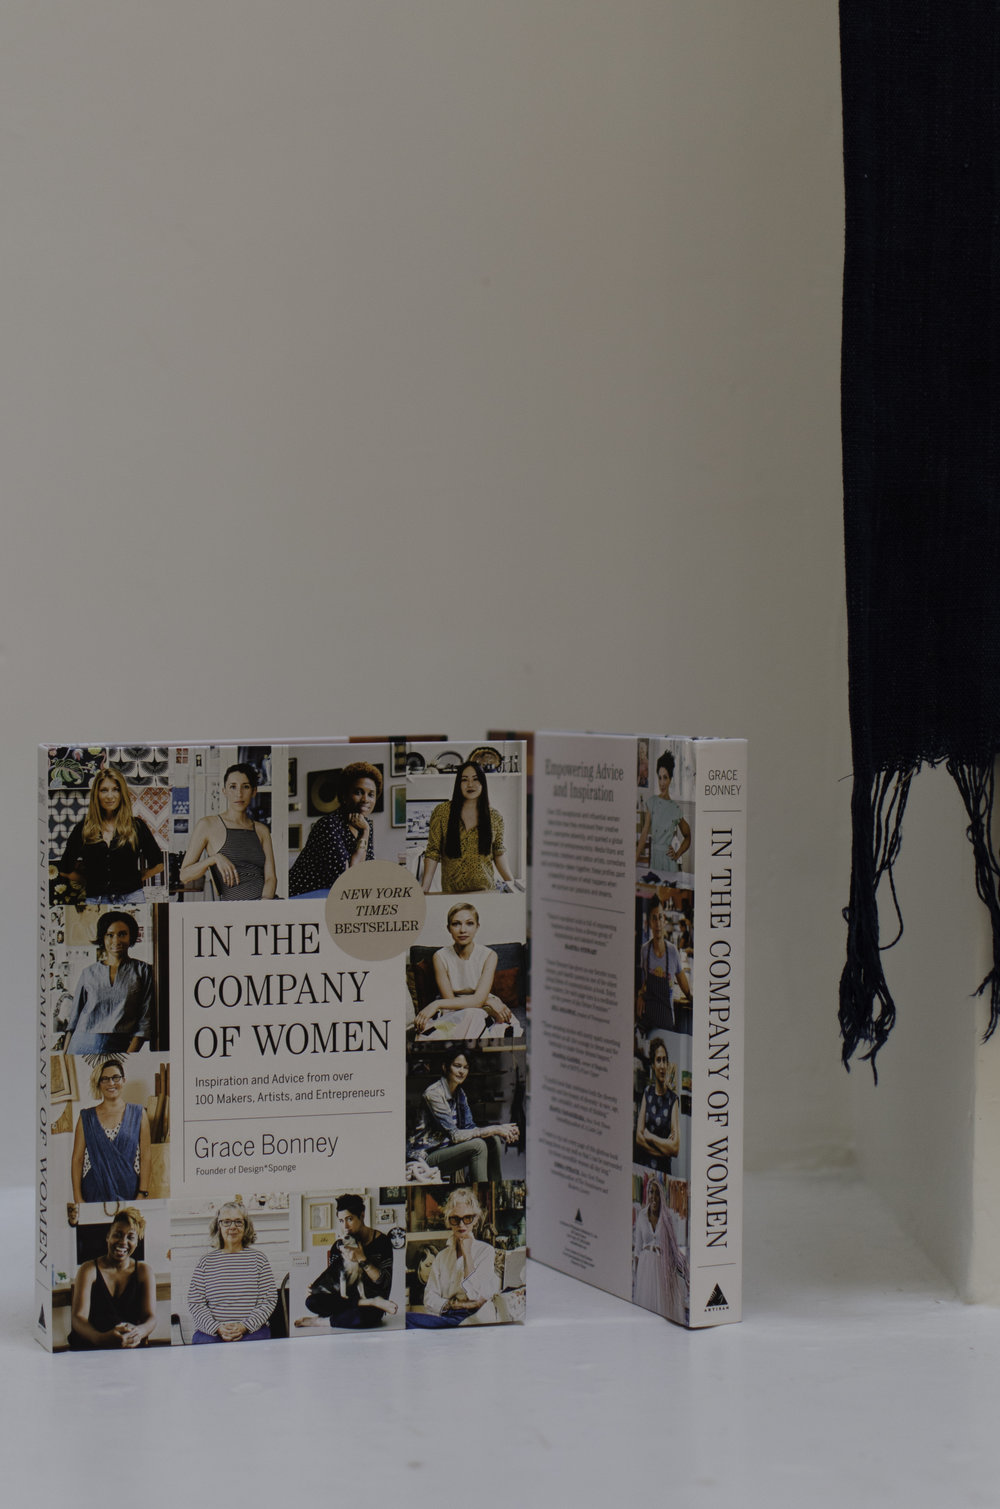 In The Company of Women     - The best gift for any creative or entrepreneurial person on your list. This book by Grace Bonney features inspiring stories of women who have just made it happen for themselves.